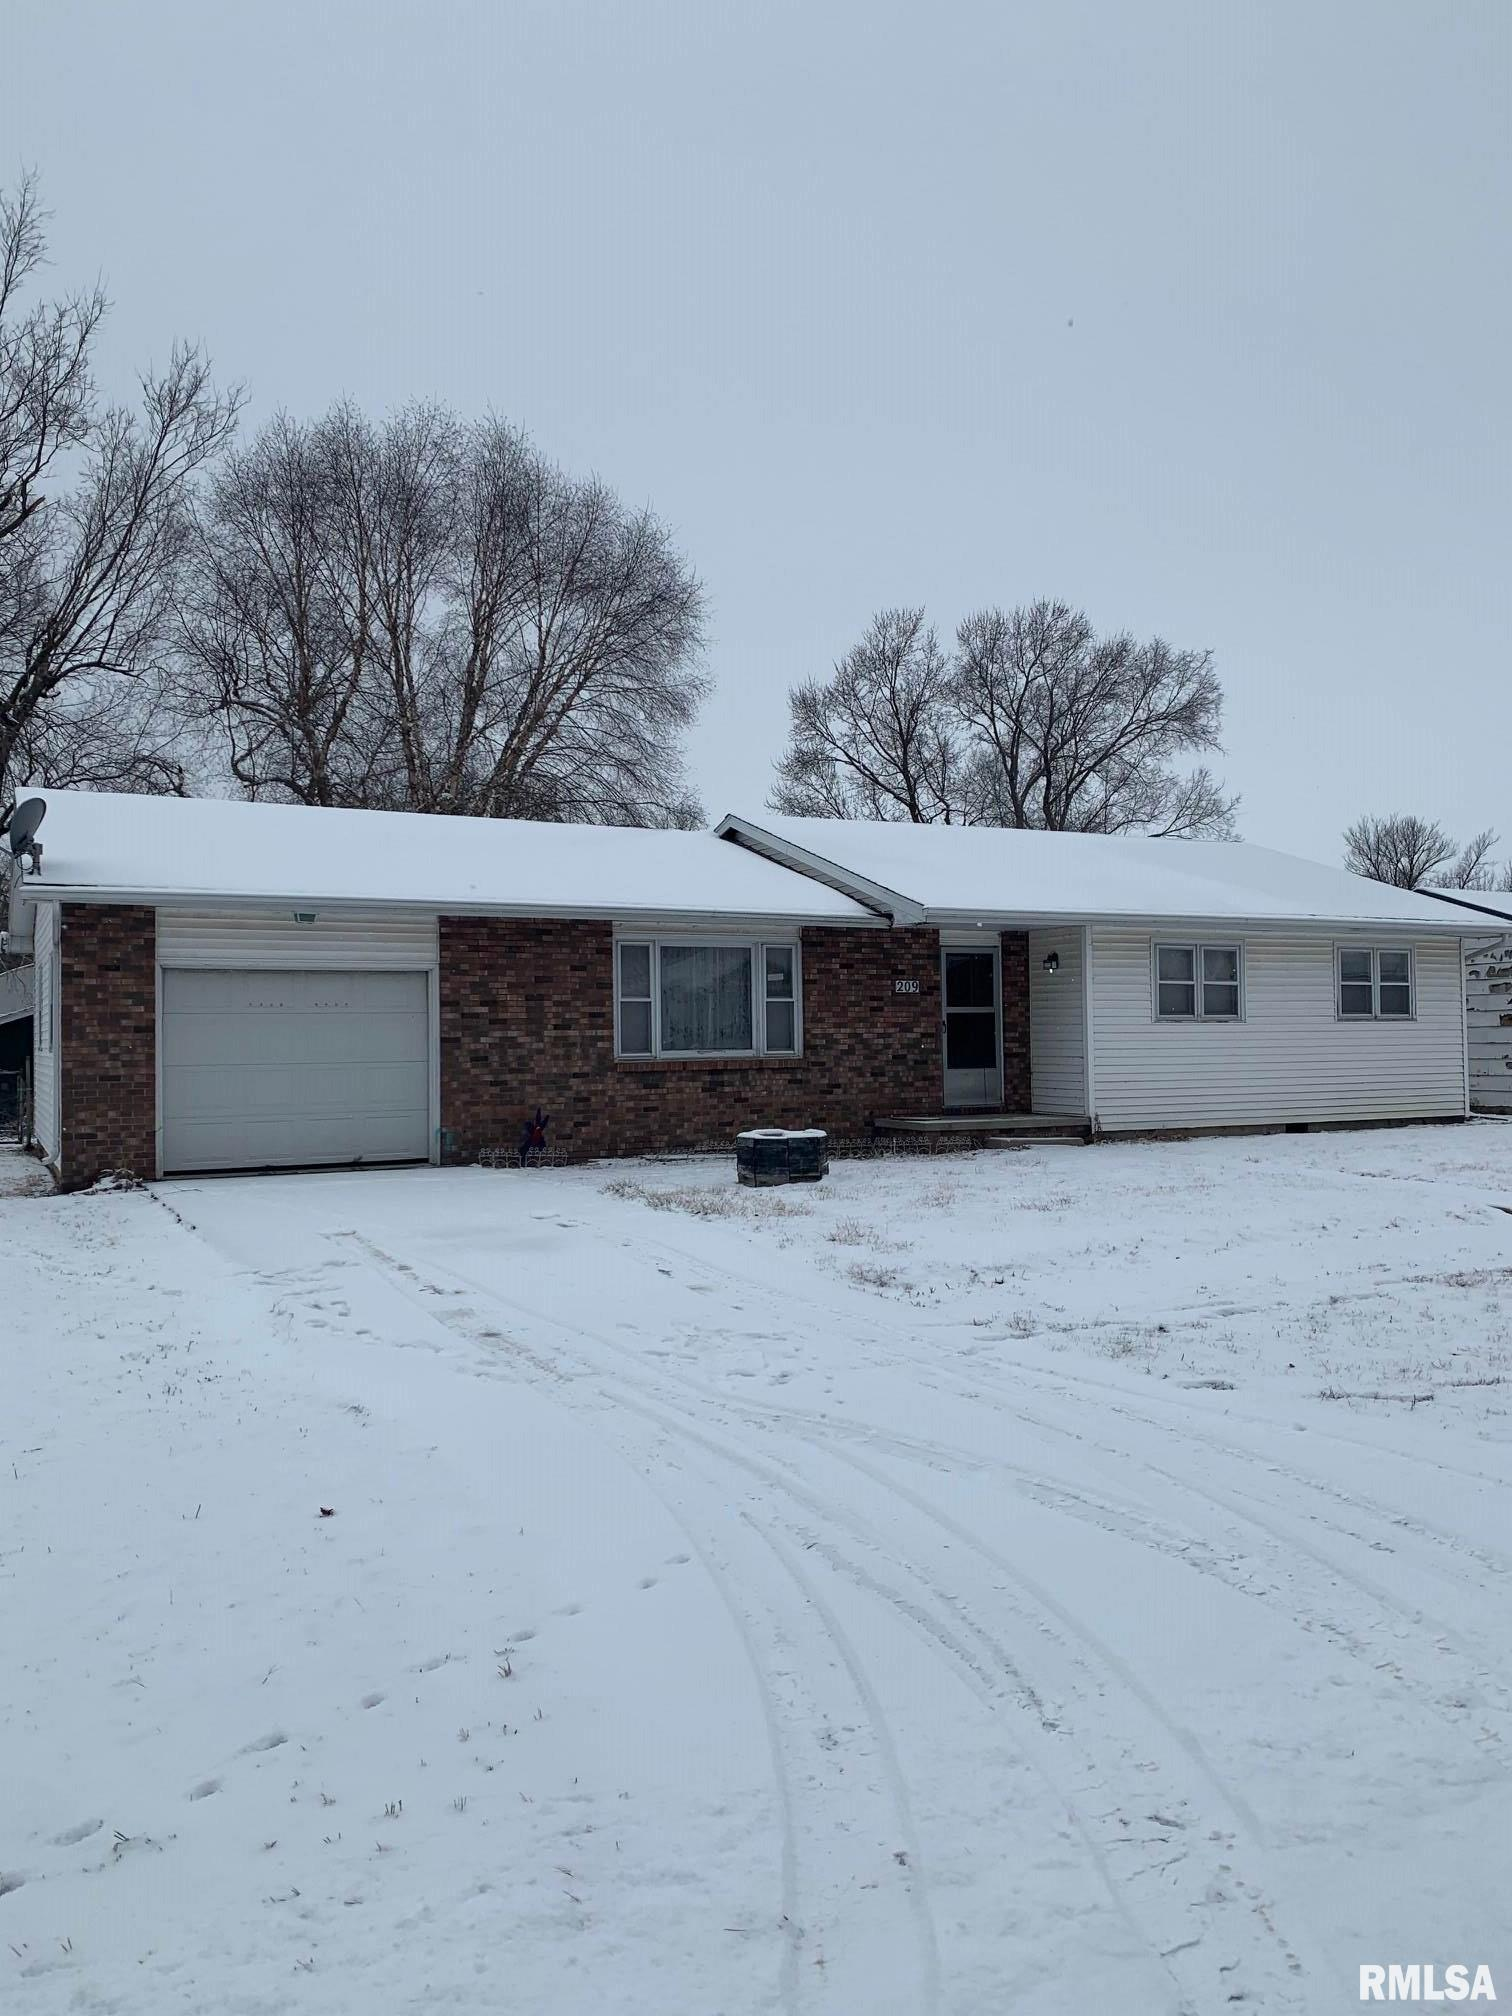 209 N Dauphin Property Photo - Chestnut, IL real estate listing